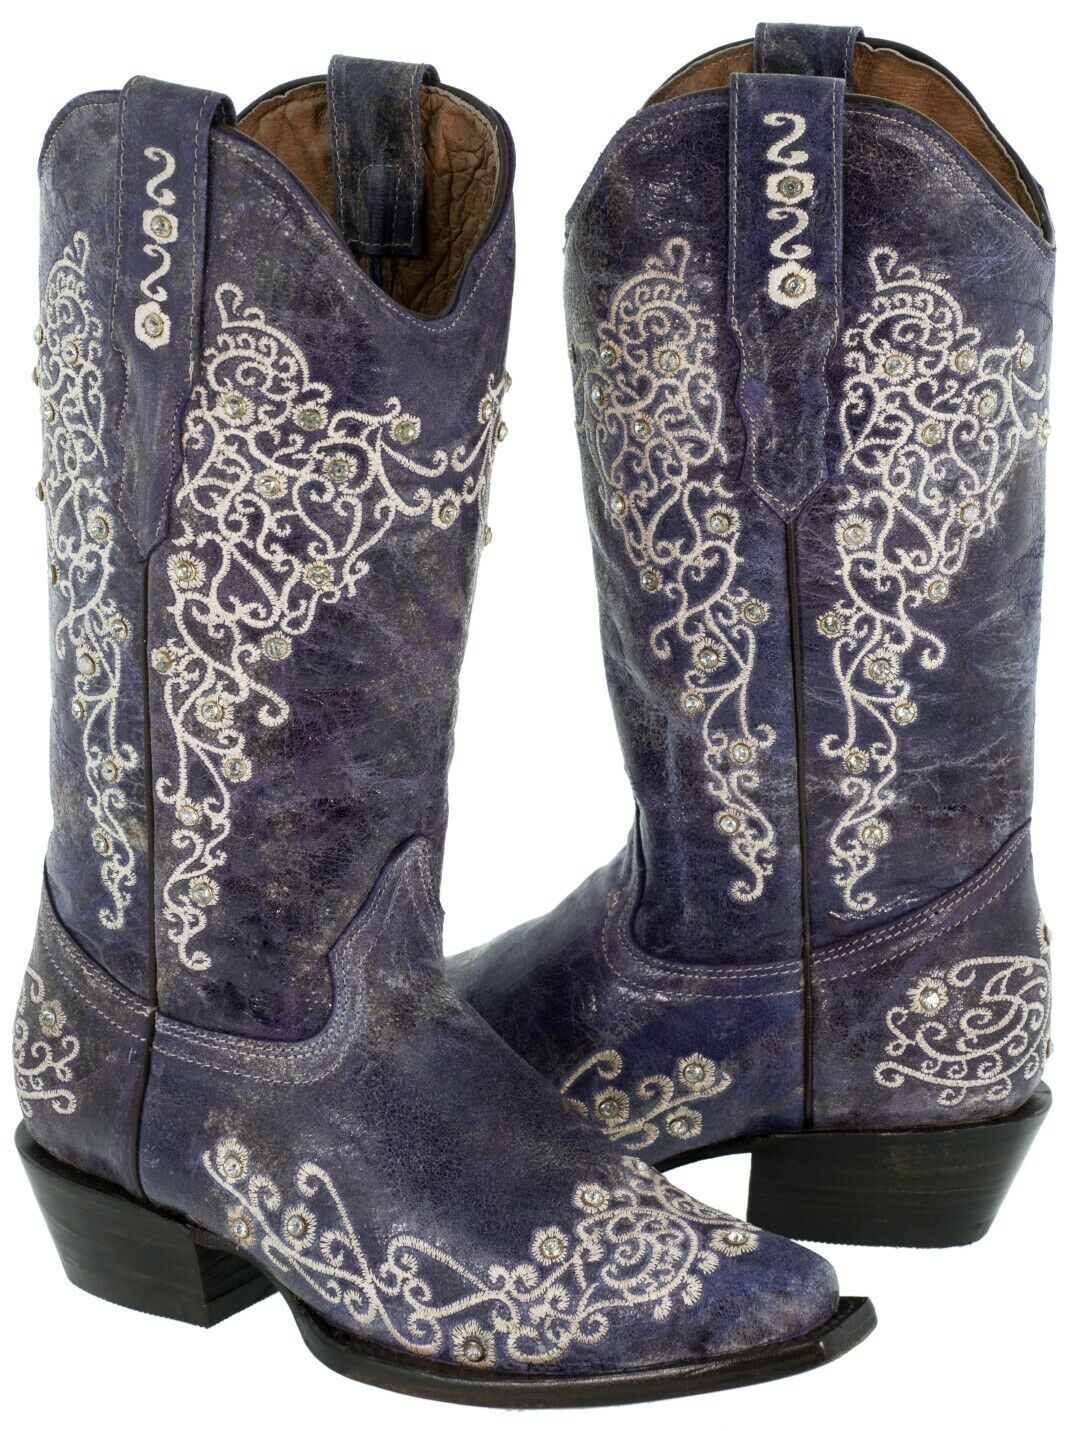 THE LEGACY BOOT White Floral Embroidery Crystal Studded Distressed Purple Genuine Leather Cowgirl Boots 5-9.5